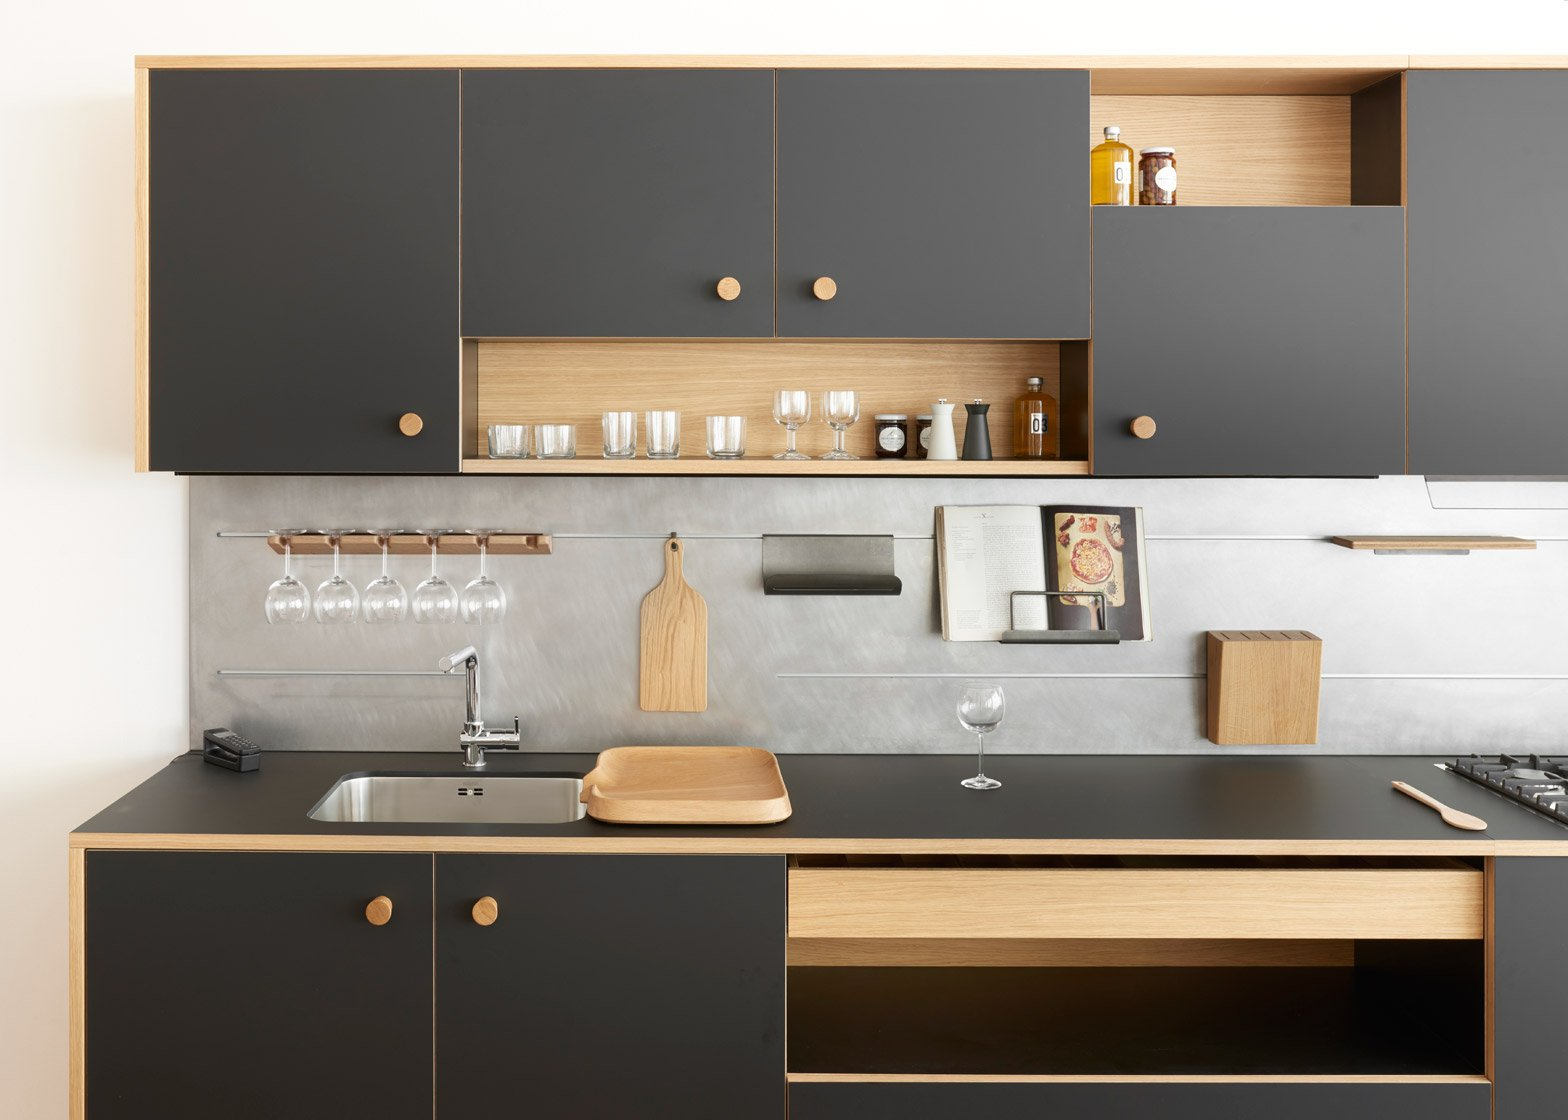 Ordinaire 11 Of 13; Lepic Kitchen By Jasper Morrison